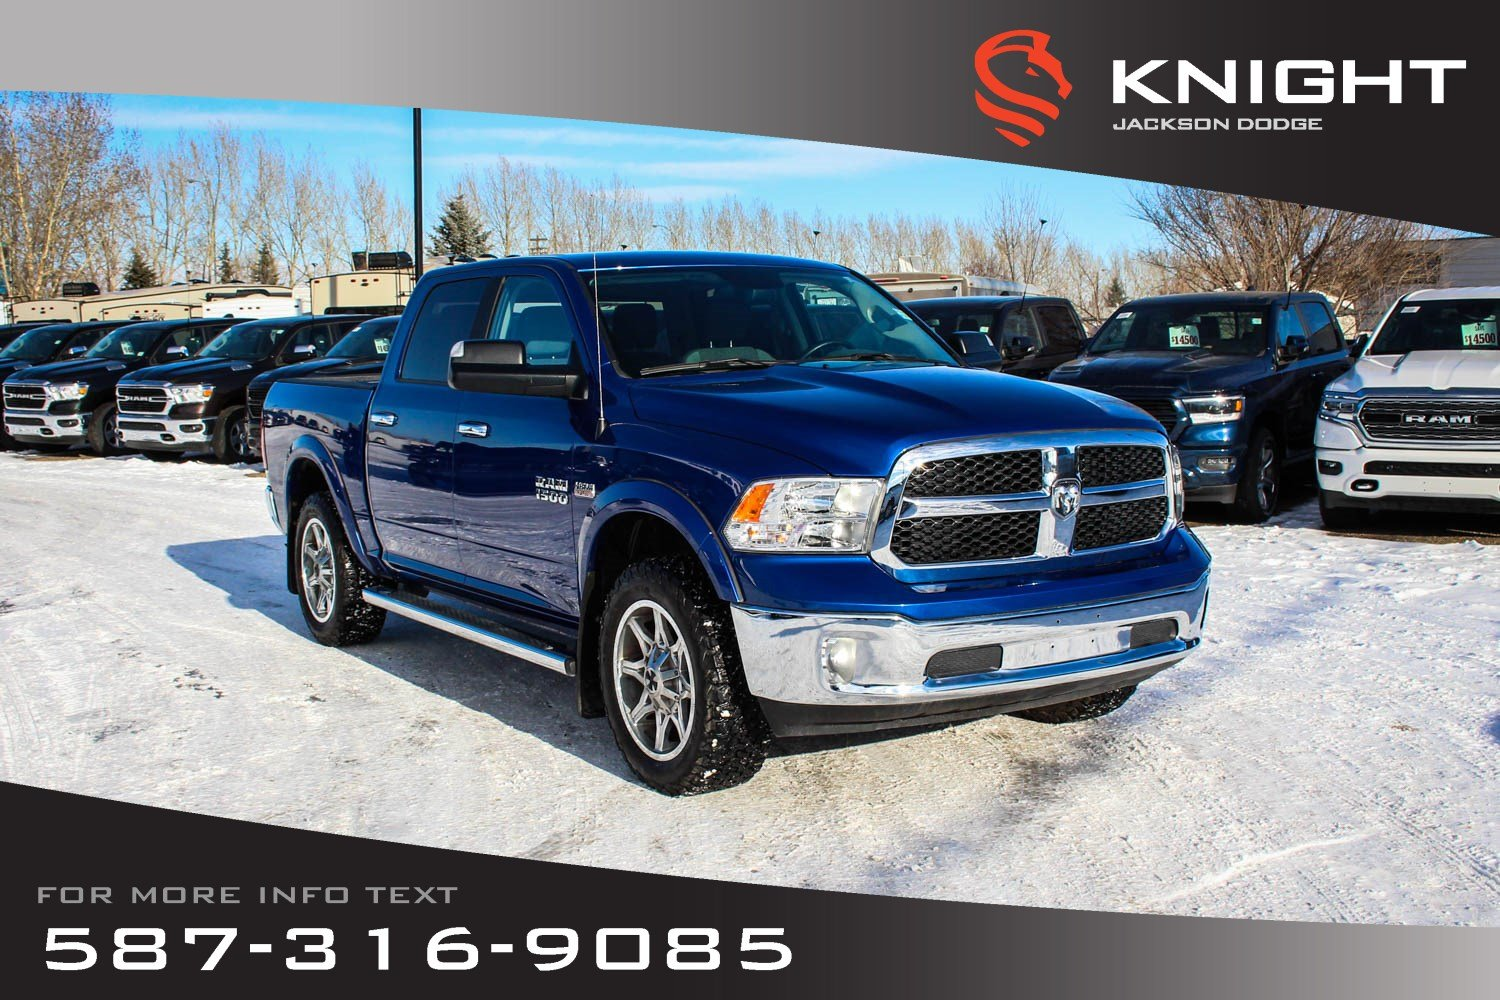 Pre-Owned 2017 Ram 1500 SLT Crew Cab - Heated Seats & Steering Wheel, Remote Start